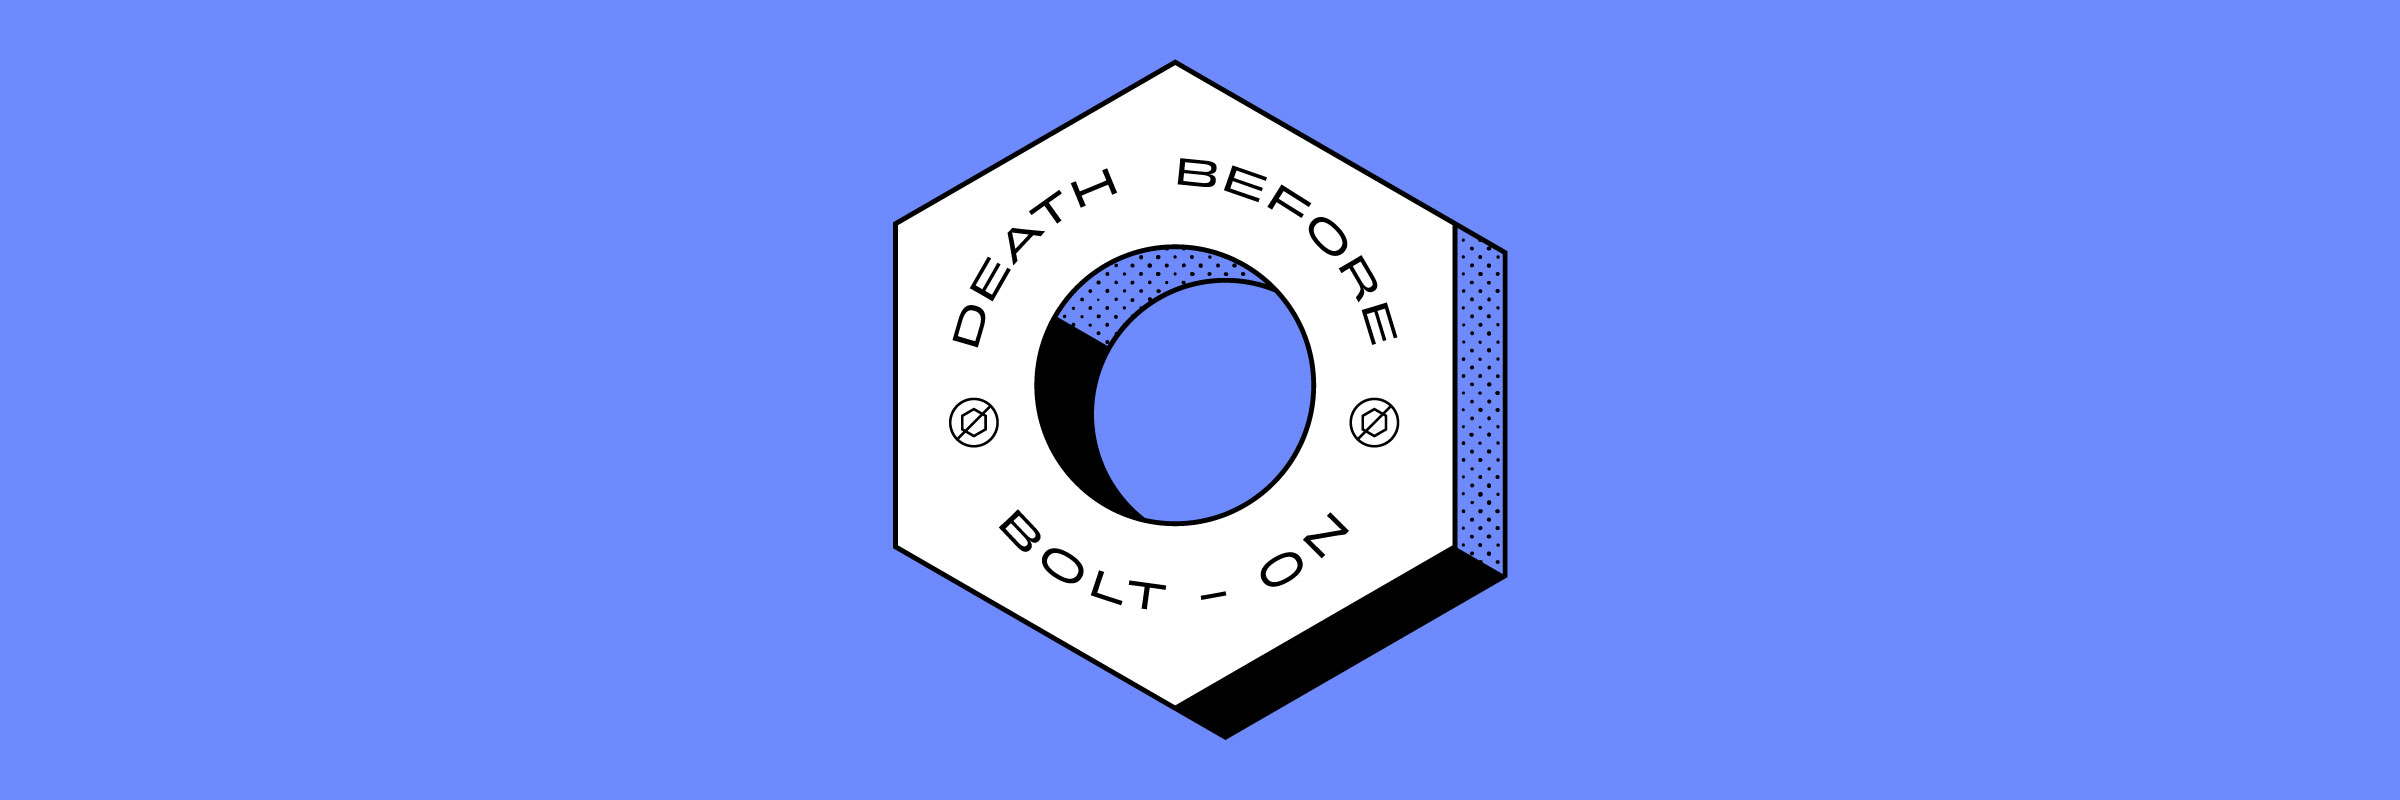 "Illustration of a hex nut with ""Death Before Bolt-On"" text inside"